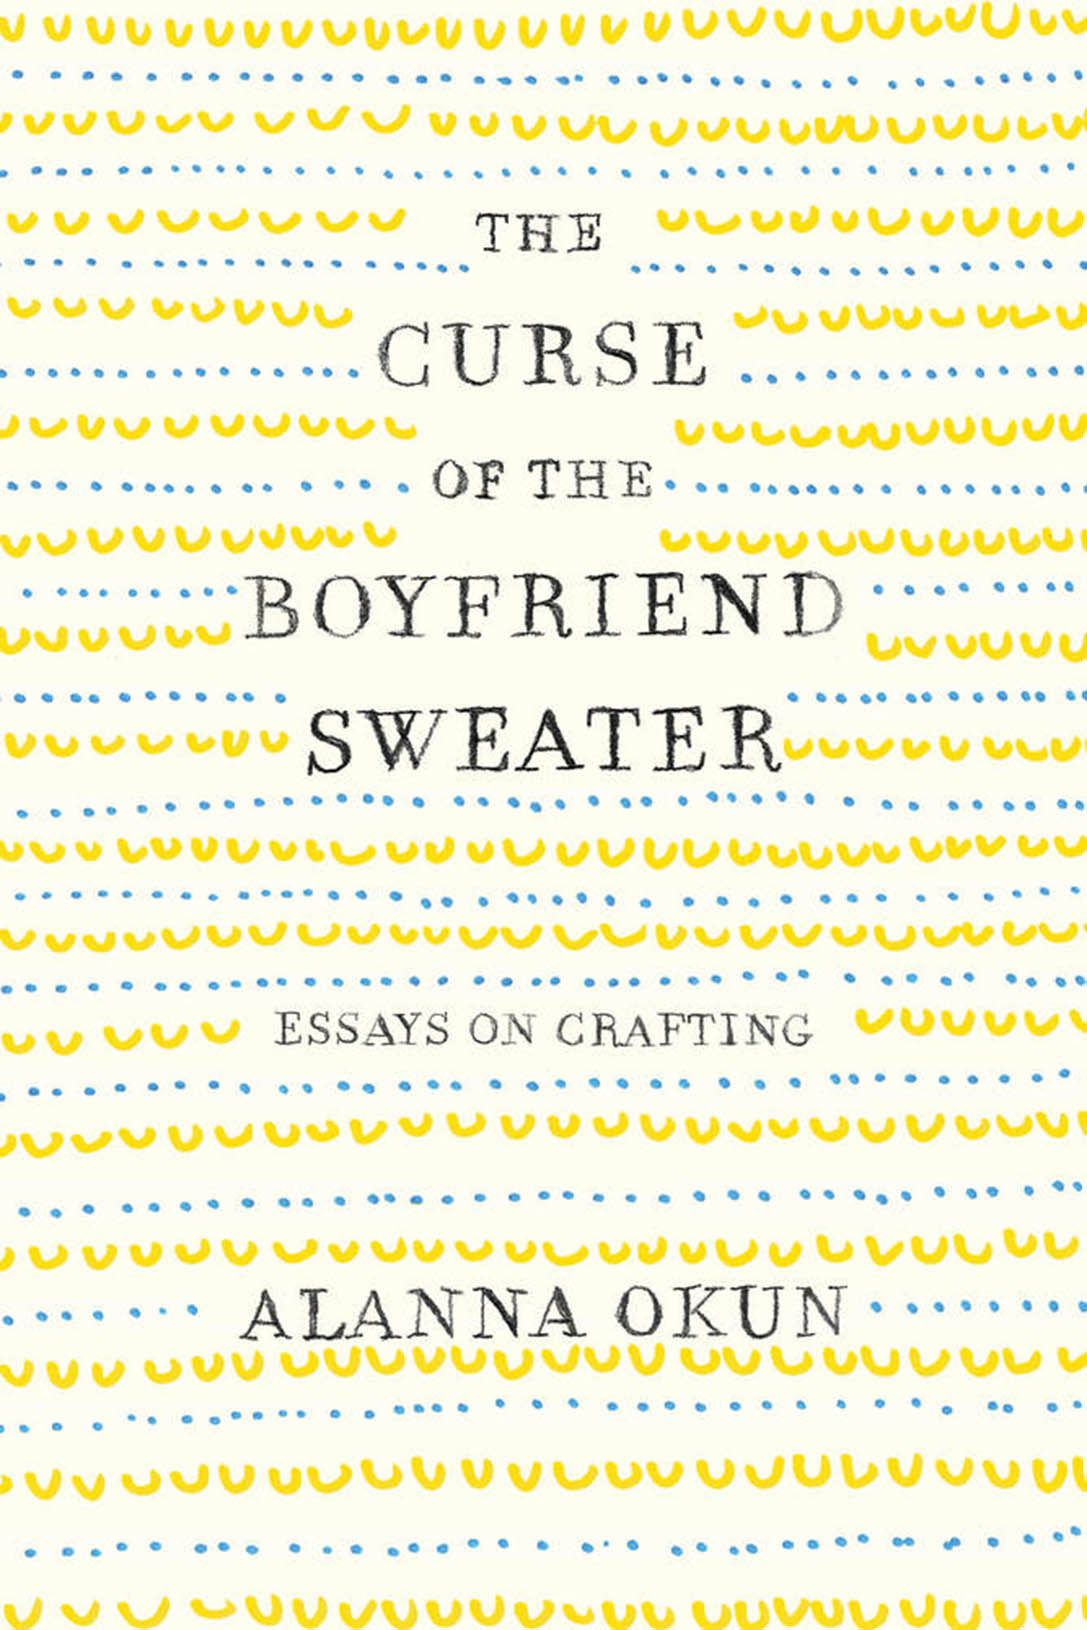 THE CURSE OF THE BOYFRIEND SWEATER: Essays on Crafting by Alanna Okun